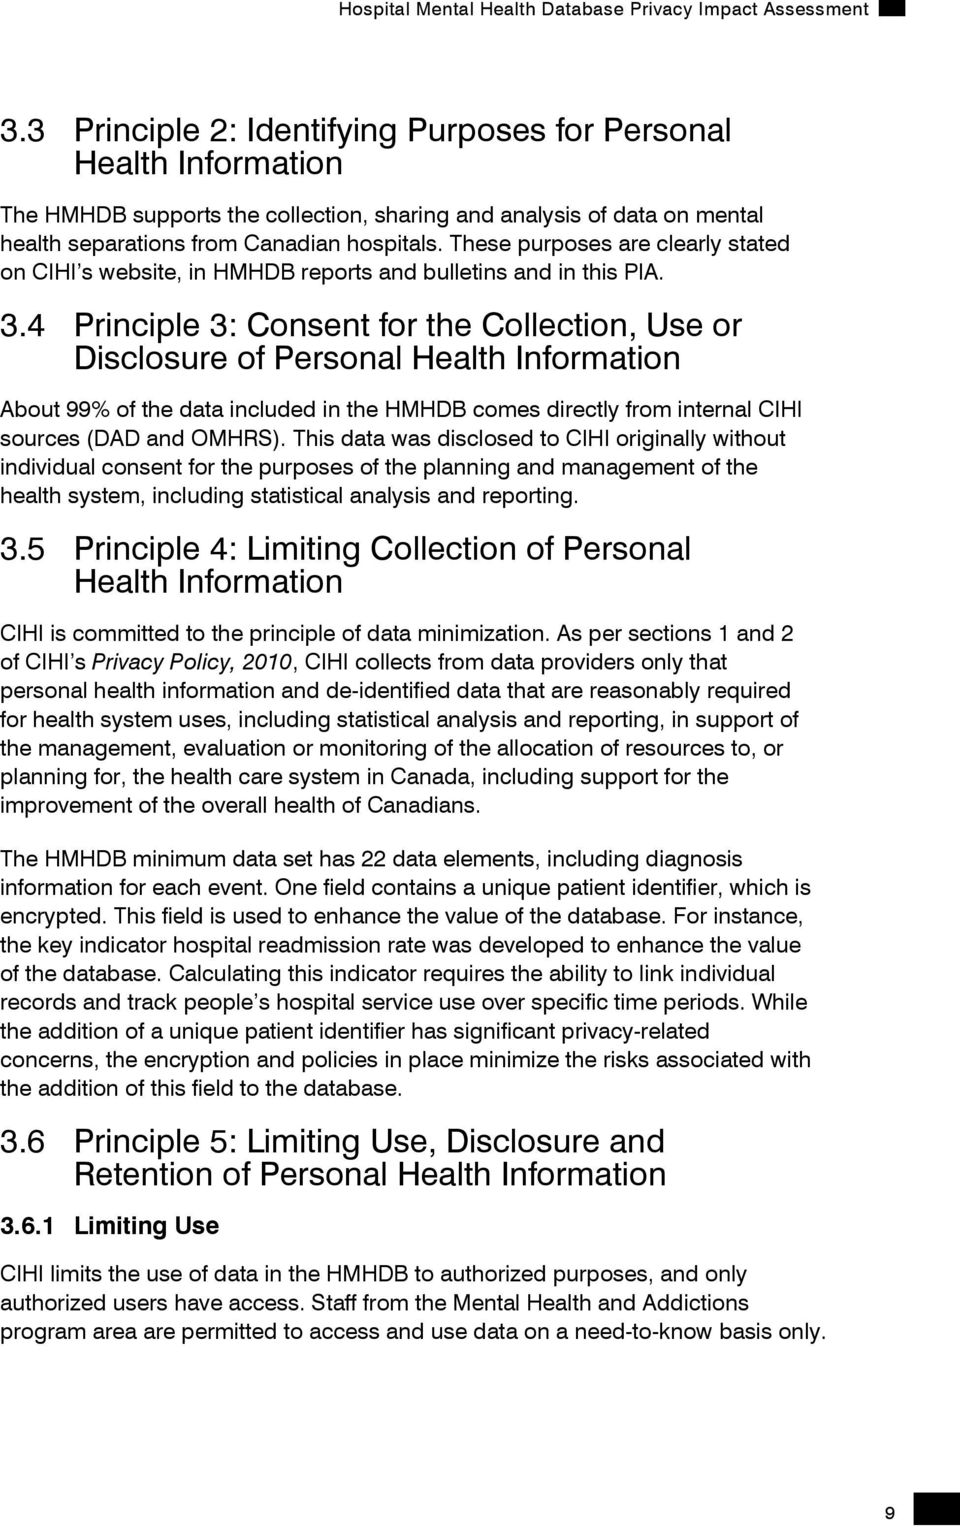 4 Principle 3: Consent for the Collection, Use or Disclosure of Personal Health Information About 99% of the data included in the HMHDB comes directly from internal CIHI sources (DAD and OMHRS).